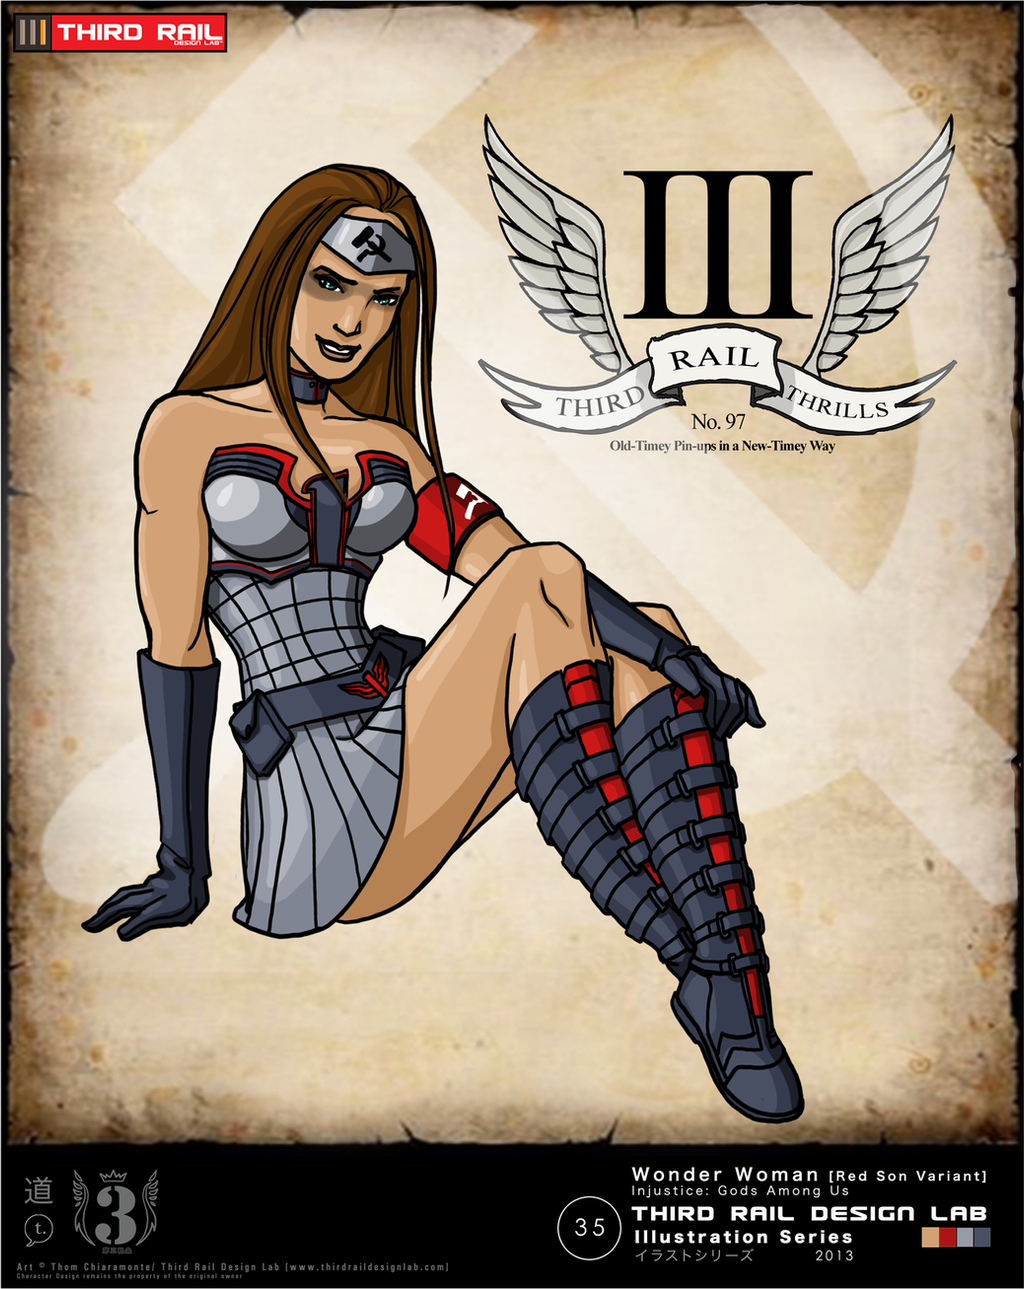 Injustice Art Contest Wonder Woman Red Son by TRDLcomicsRed Son Wonder Woman Injustice